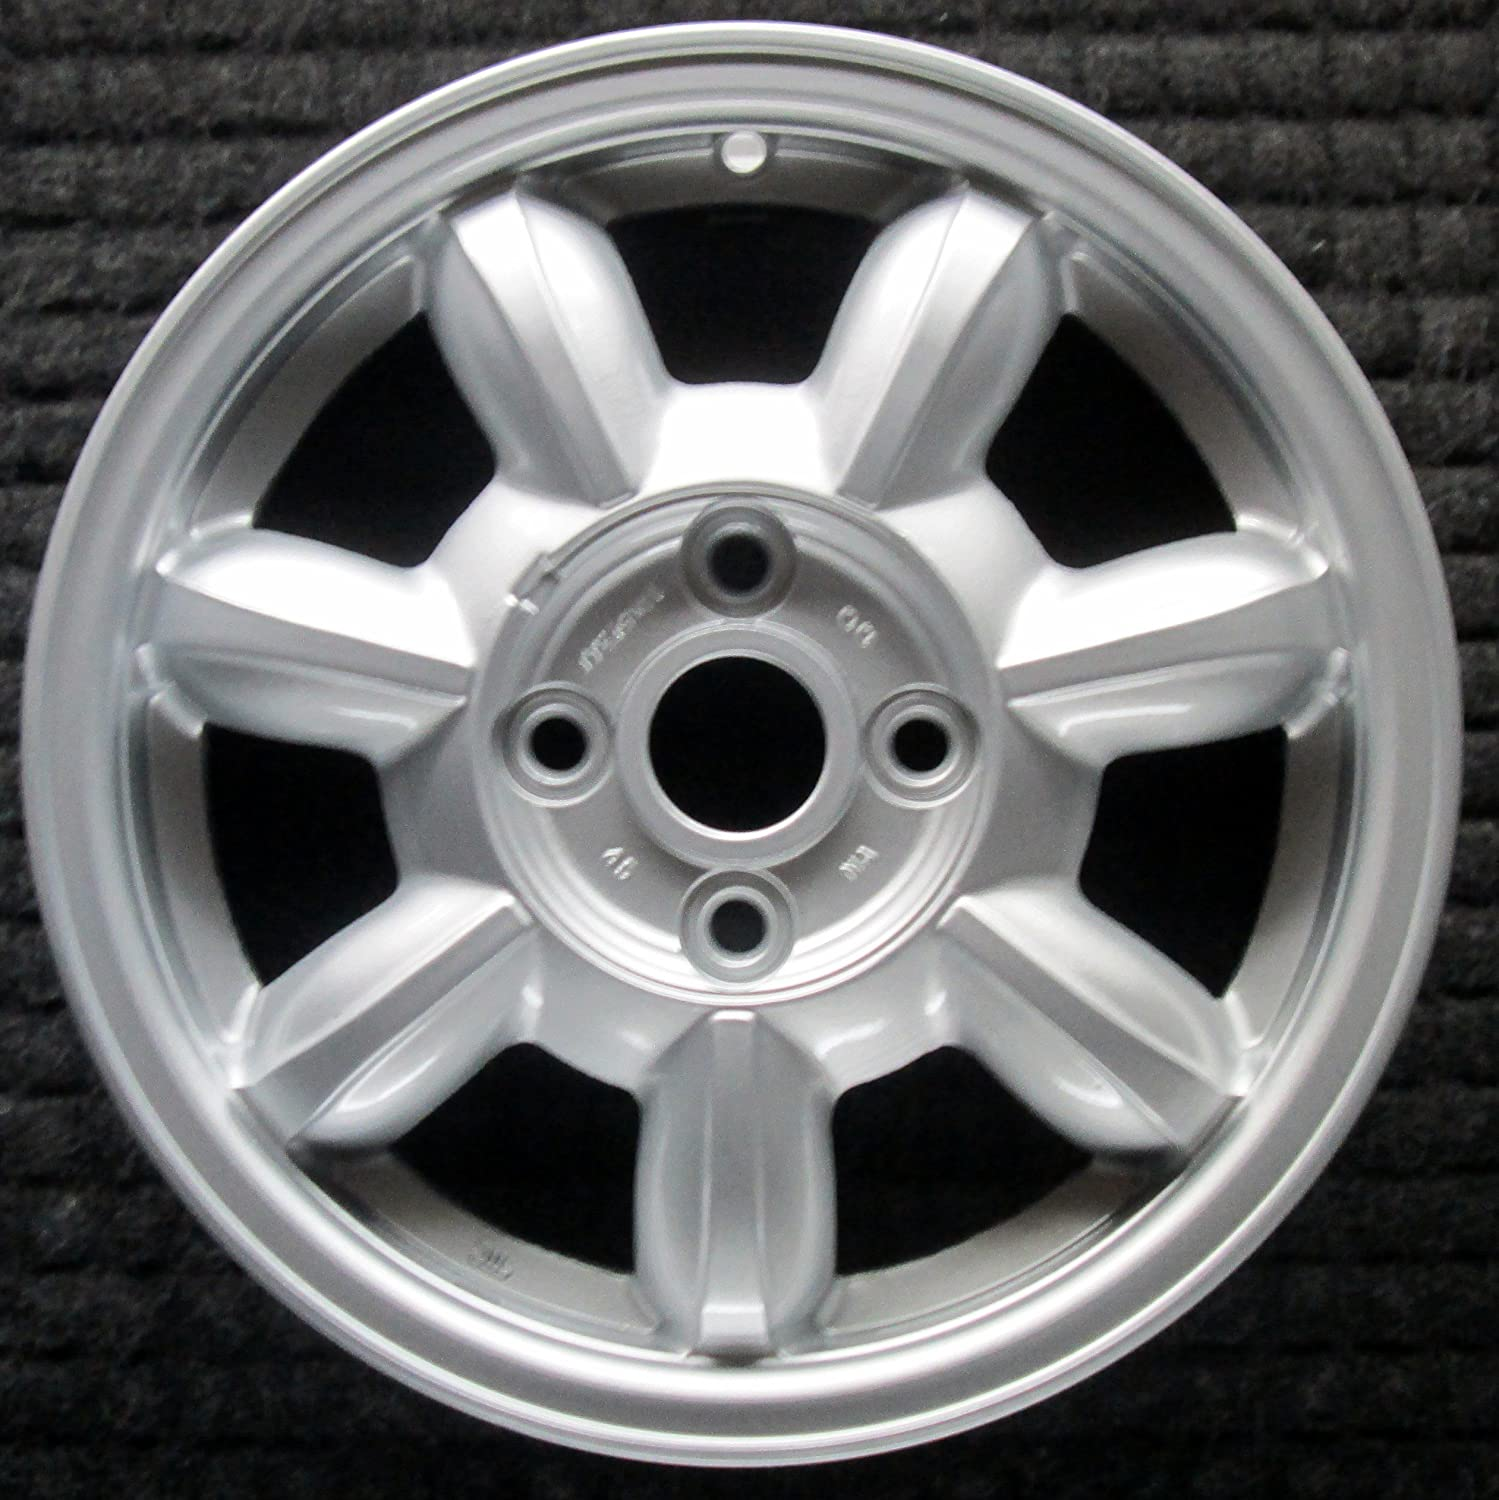 64125 Reconditioned OEM Factory Aluminum 17x7.5 Wheel Painted Silver